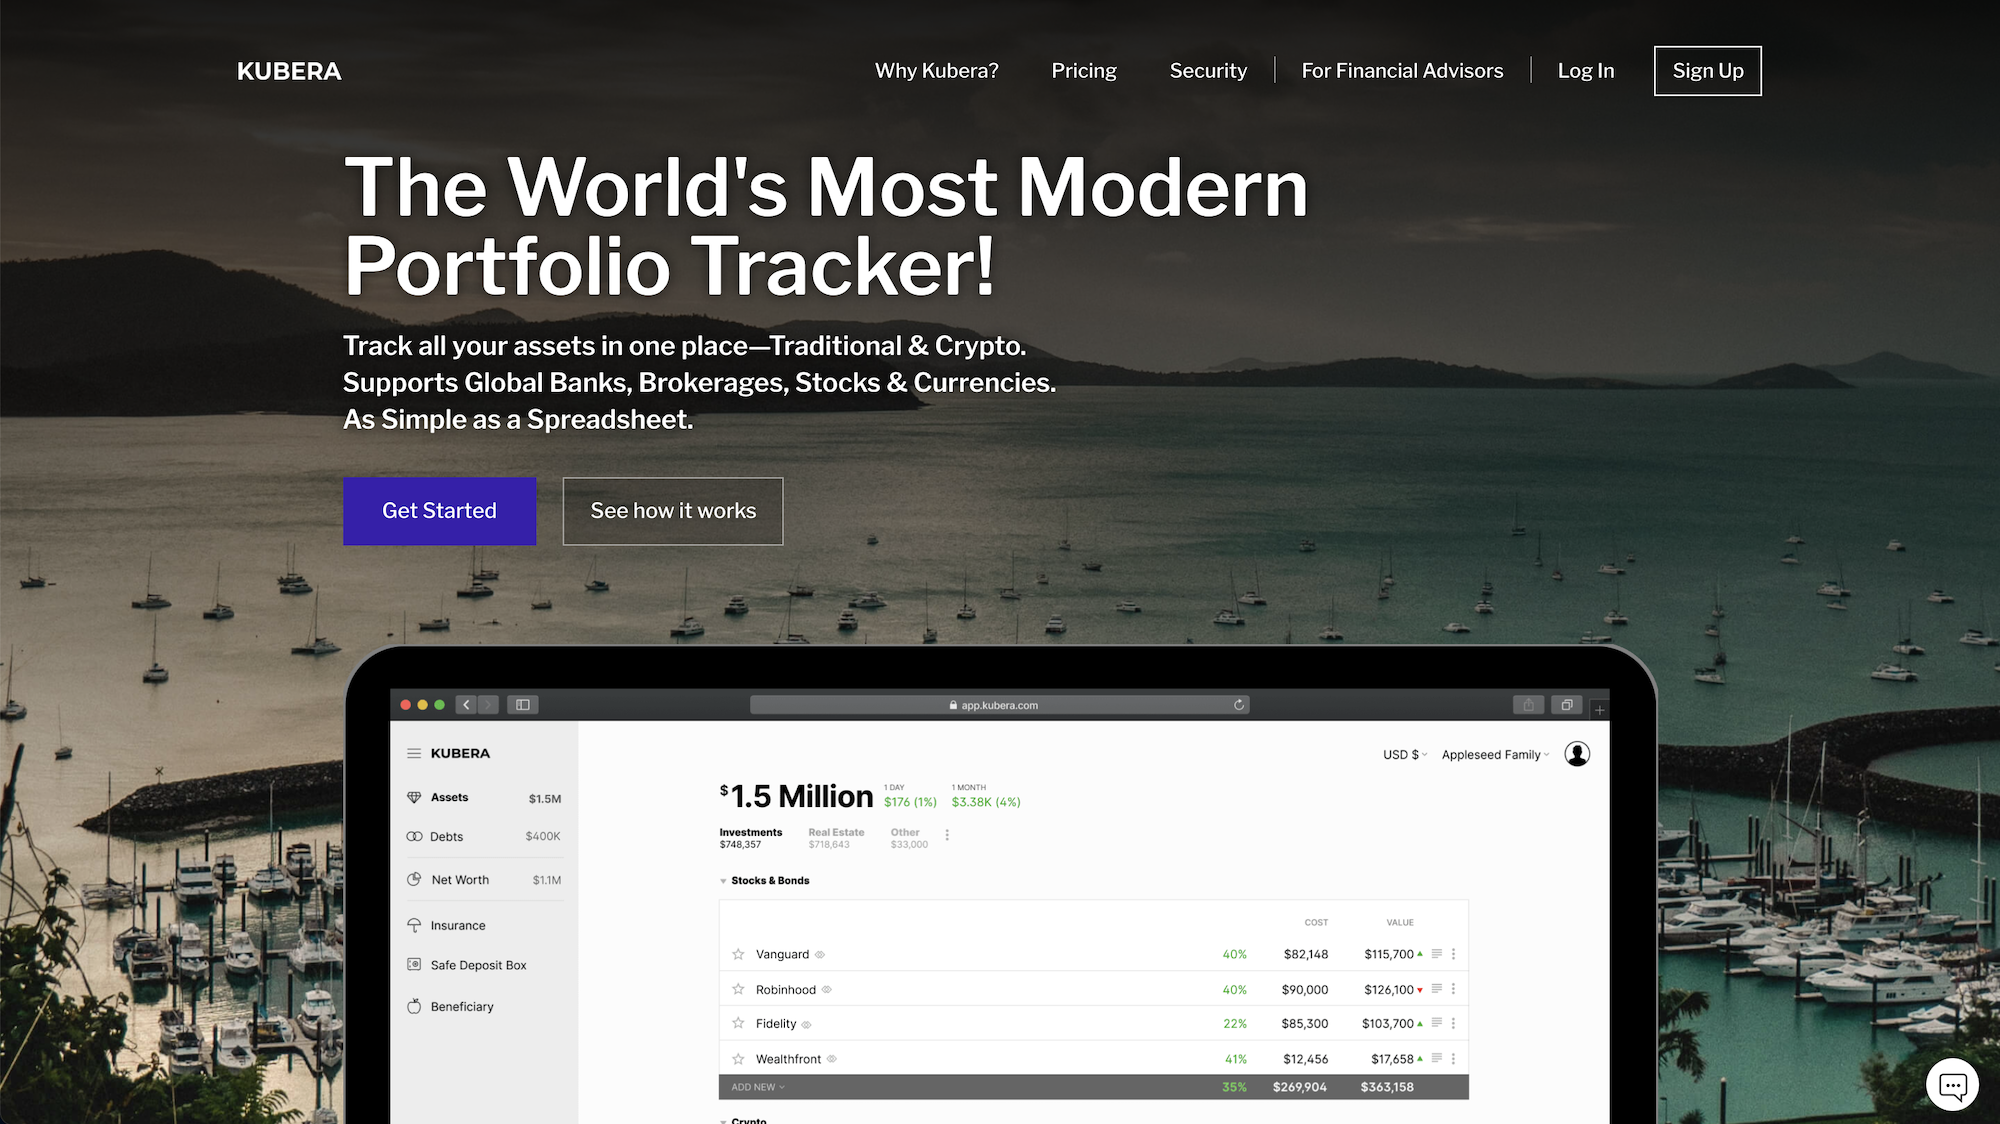 Kubera: A Well-Rounded Portfolio Management Tool for Modern, Diverse Investors